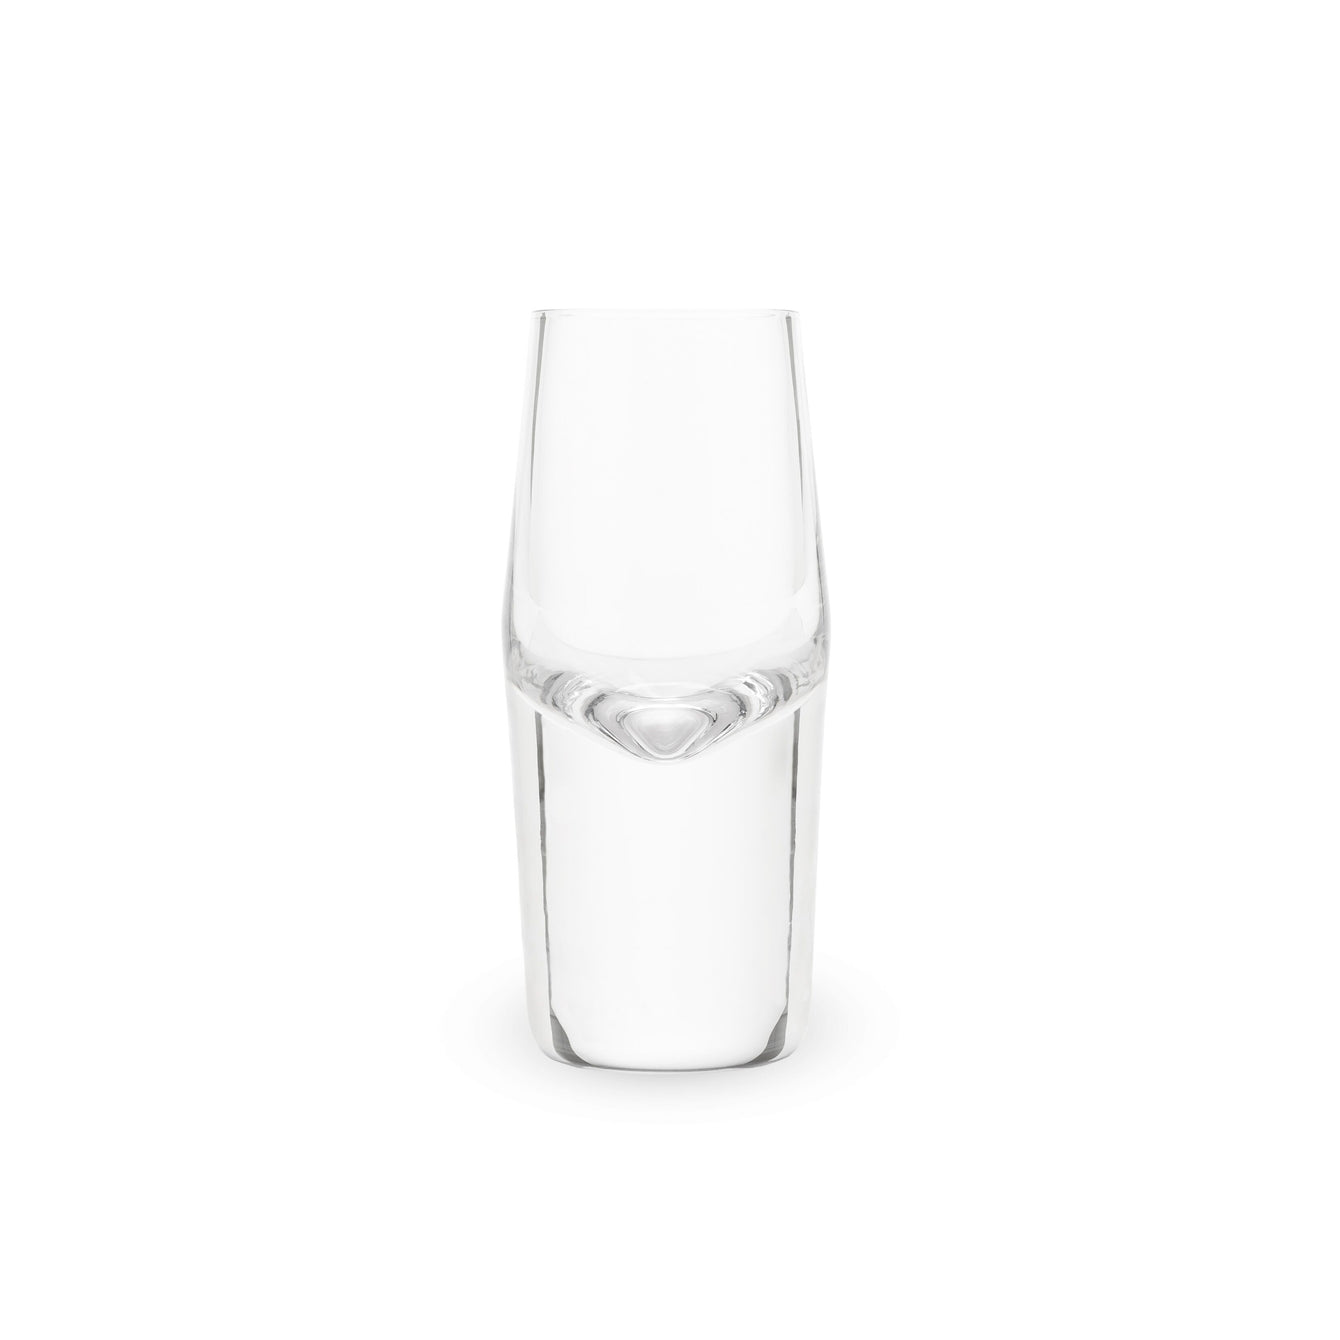 Heavyweight Crystal Shot Glasses (Set of 2)-Home - Entertaining - Shot Glasses Sets-VISKI-Peccadilly